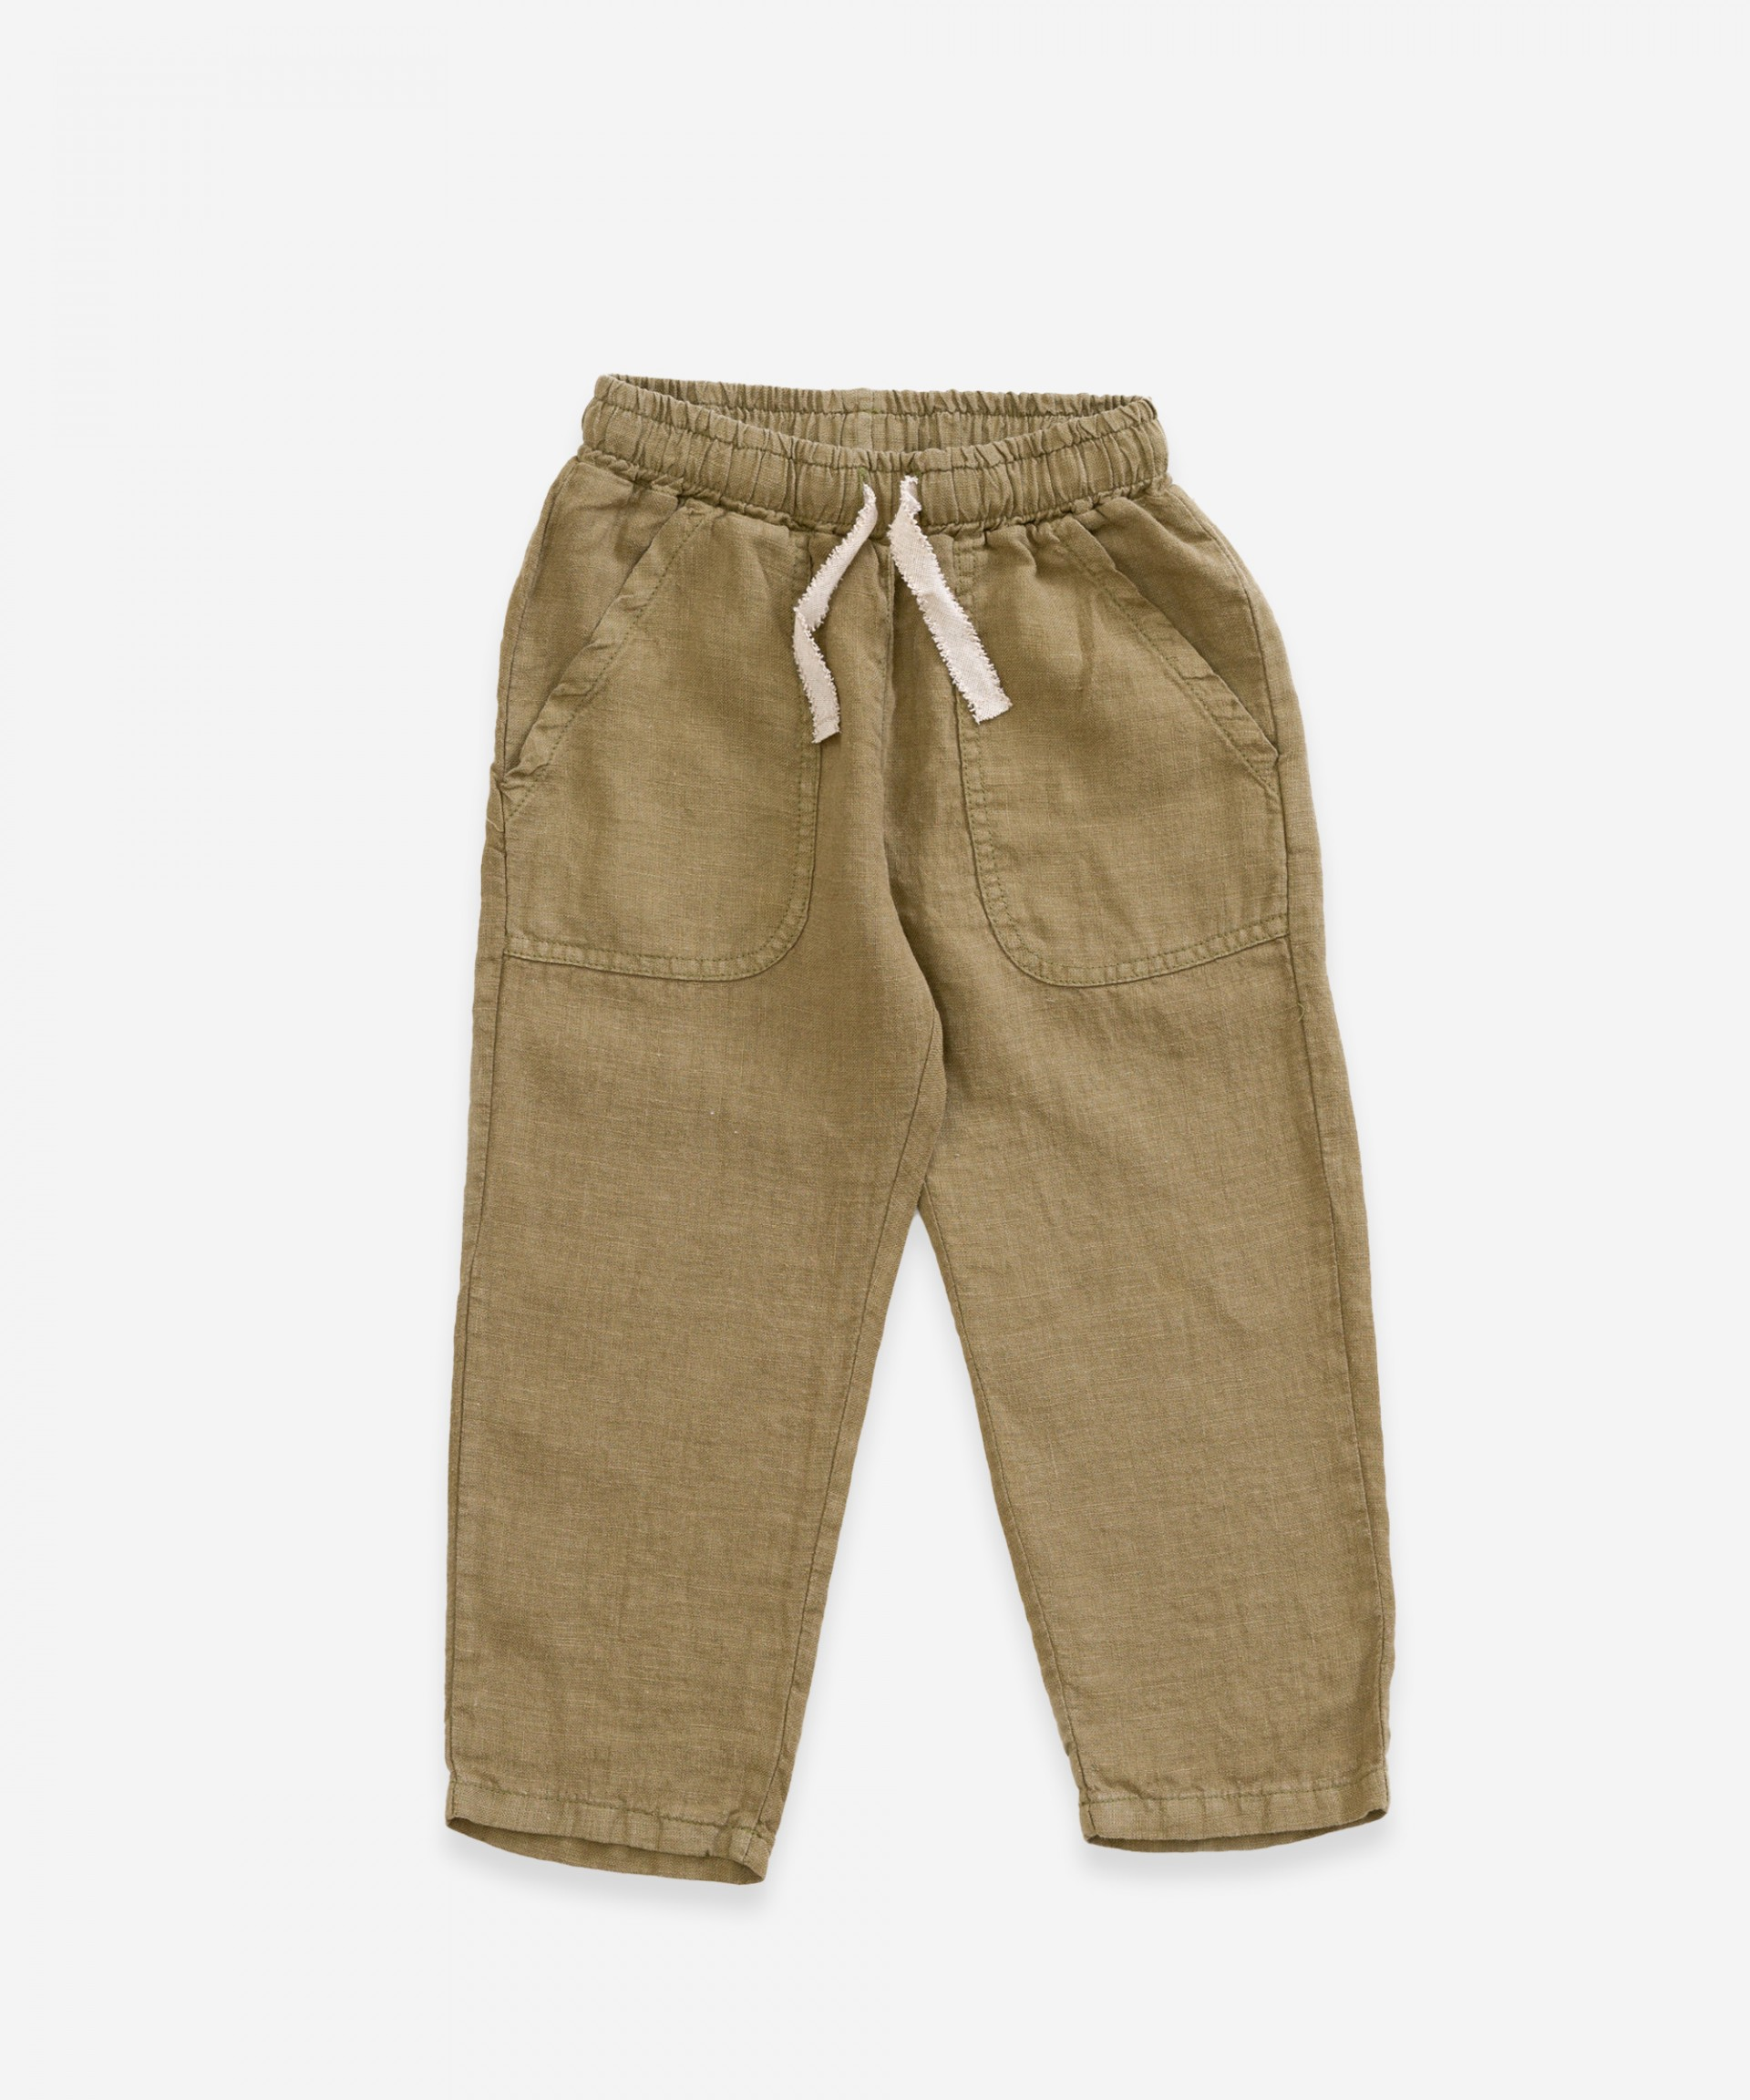 Linen trousers with decorative drawstring | Weaving